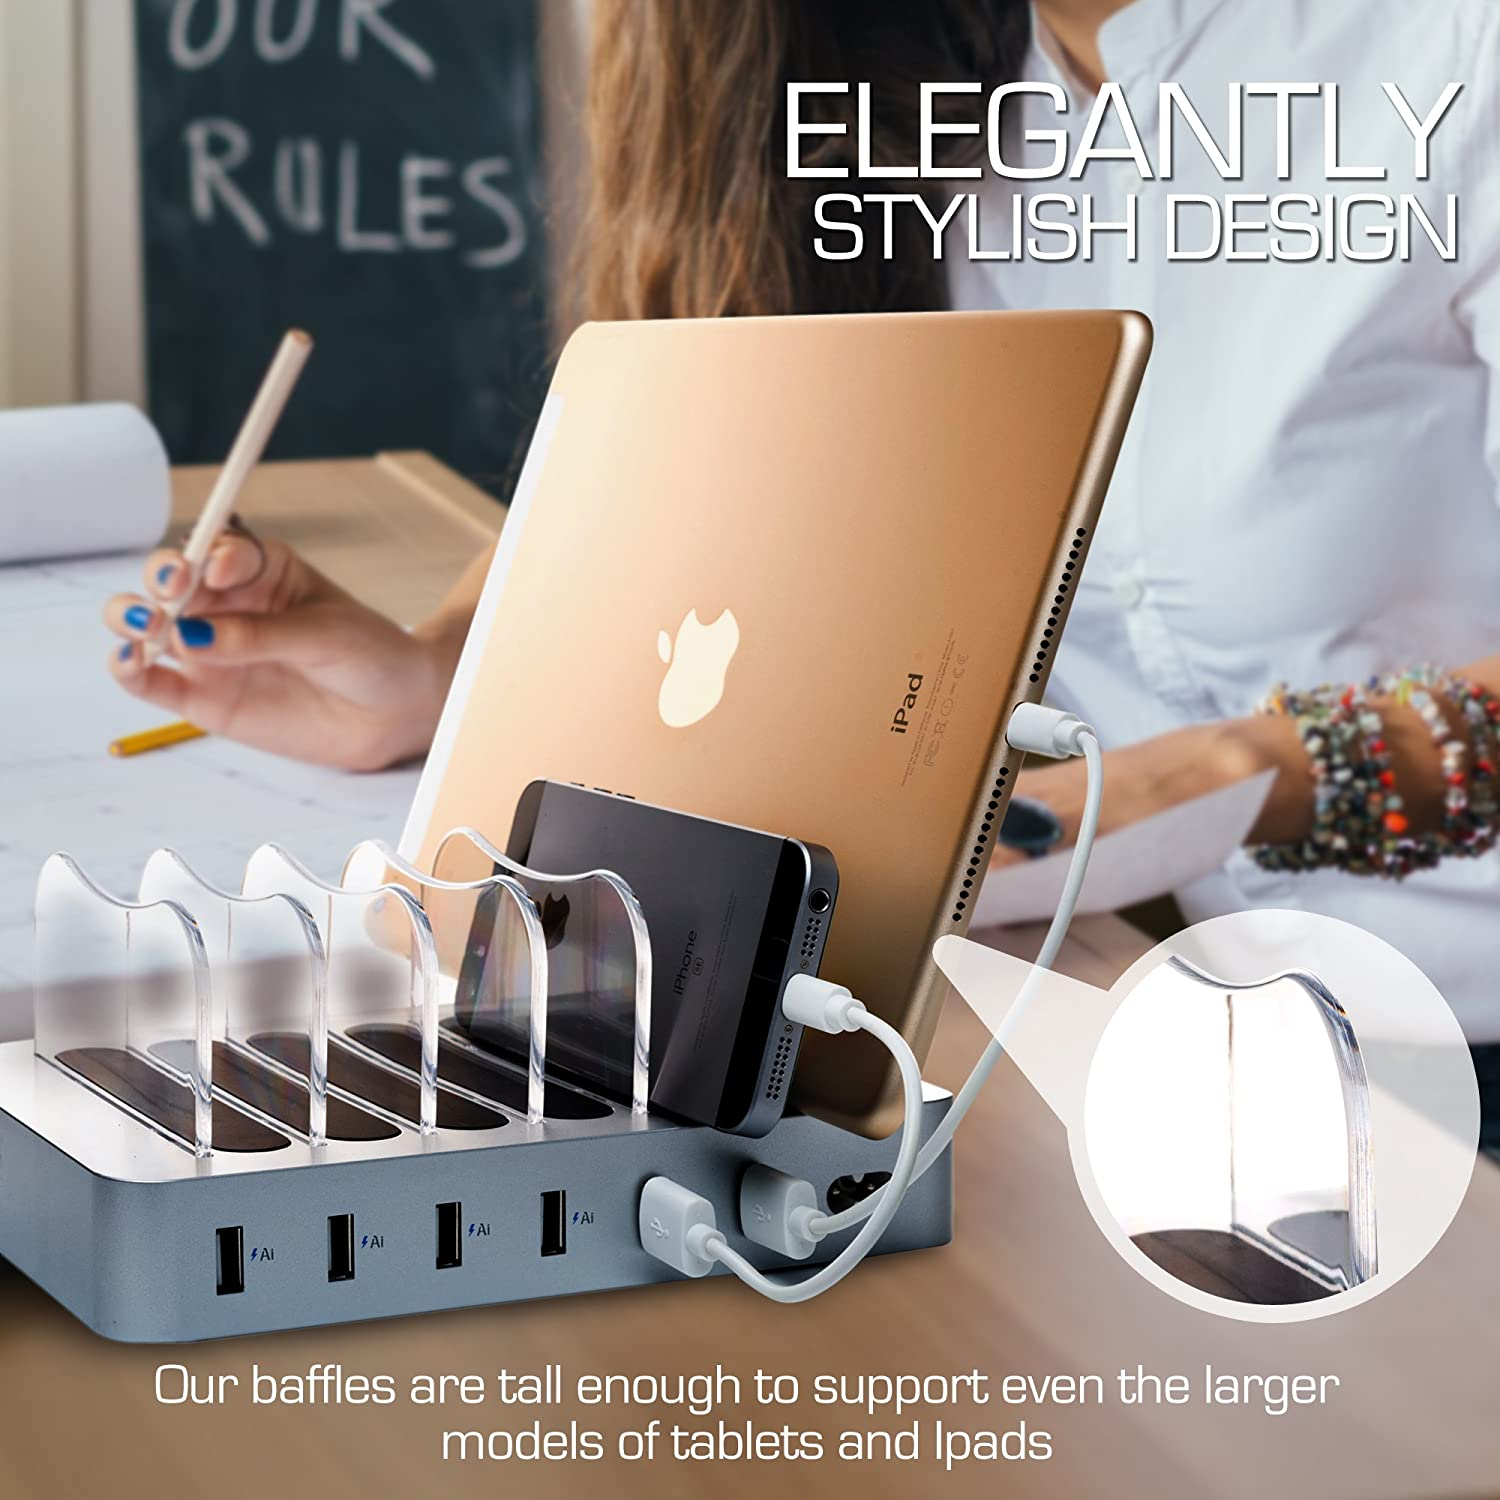 Silver - 6 Short Type-C and Micro USB Cables Included for Cell Phones Smart Phones Tablets and Other Electronics Hercules Tuff Charging Station for Multiple Devices